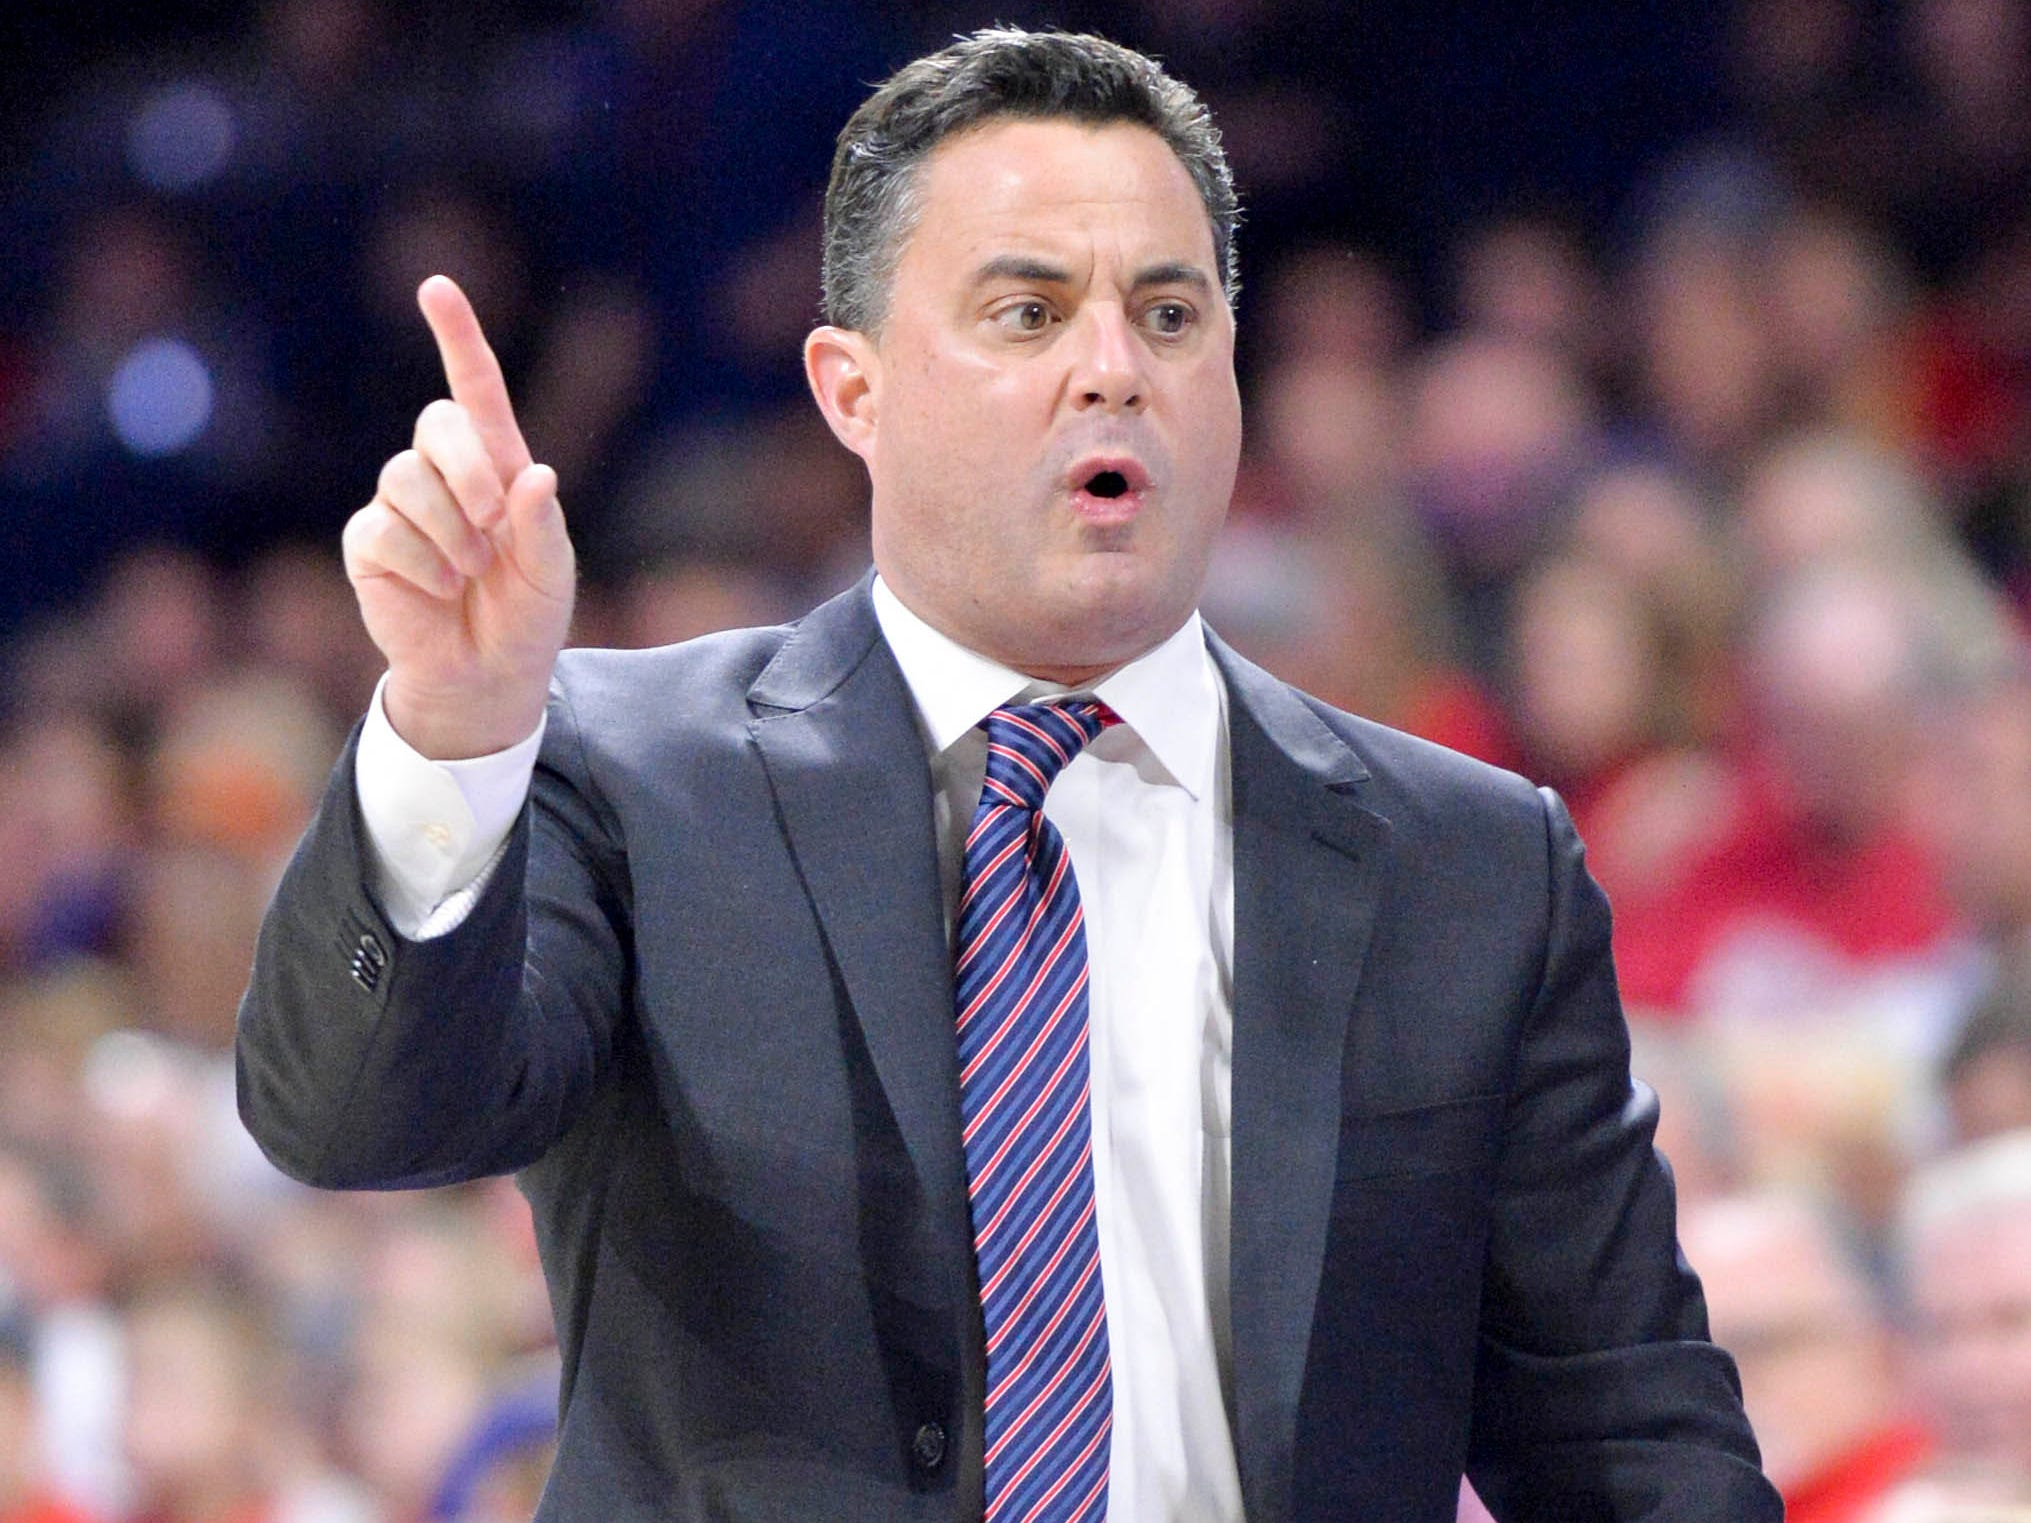 Dec 22, 2018; Tucson, AZ, USA; Arizona Wildcats head coach Sean Miller signals to the bench during the first half against the UC Davis Aggies at McKale Center. Mandatory Credit: Casey Sapio-USA TODAY Sports